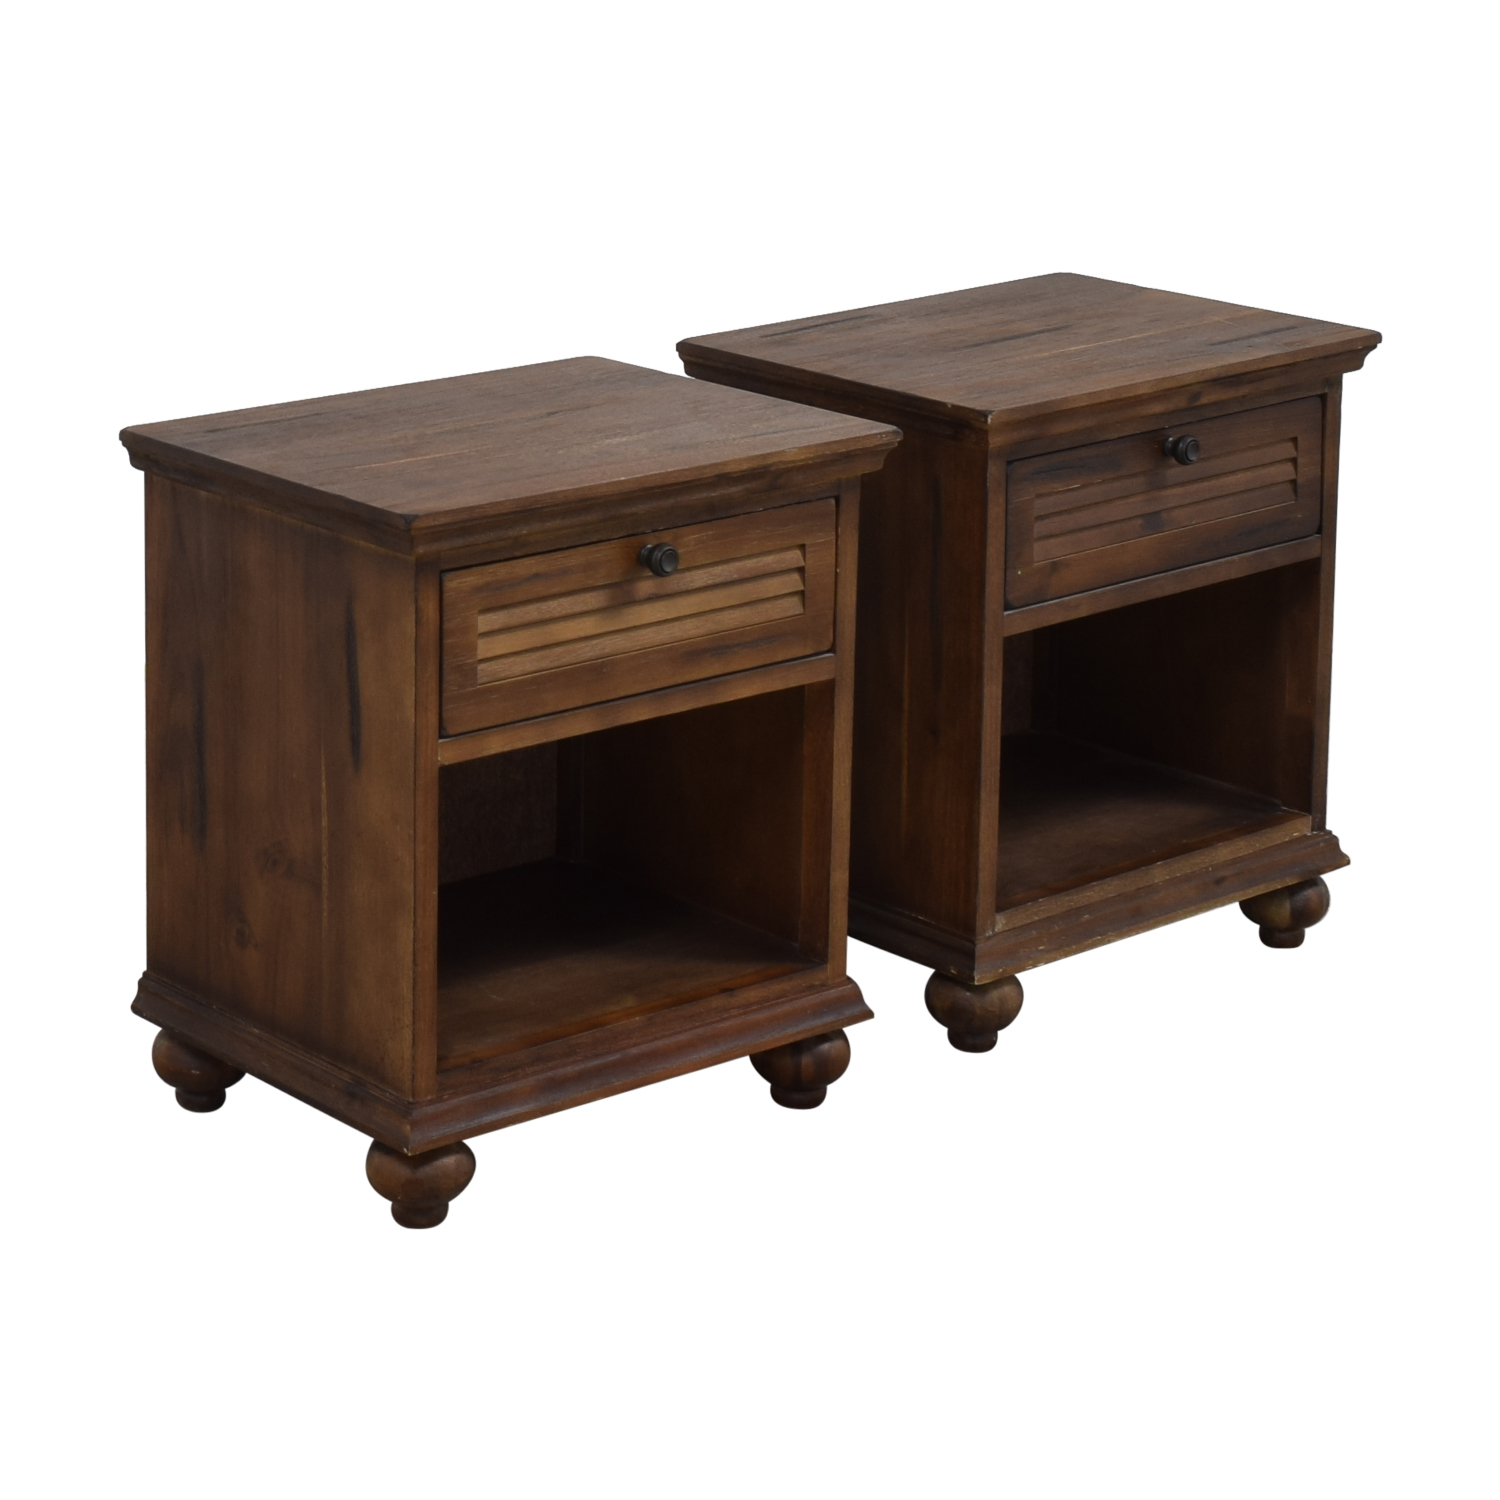 World Market End Tables sale